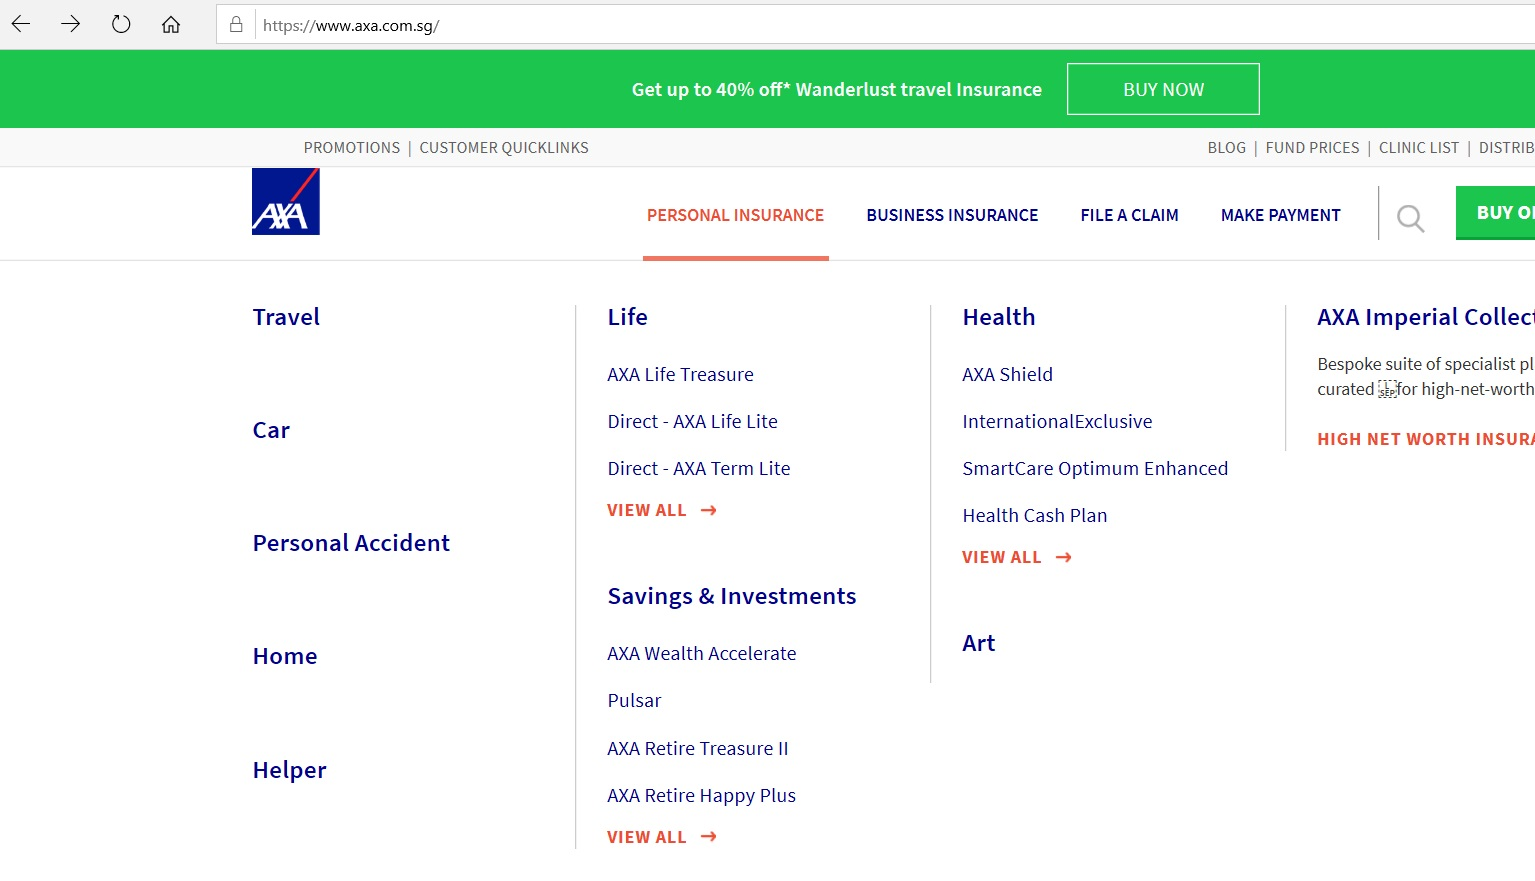 Dropdown of product categories for Personal Insurance.